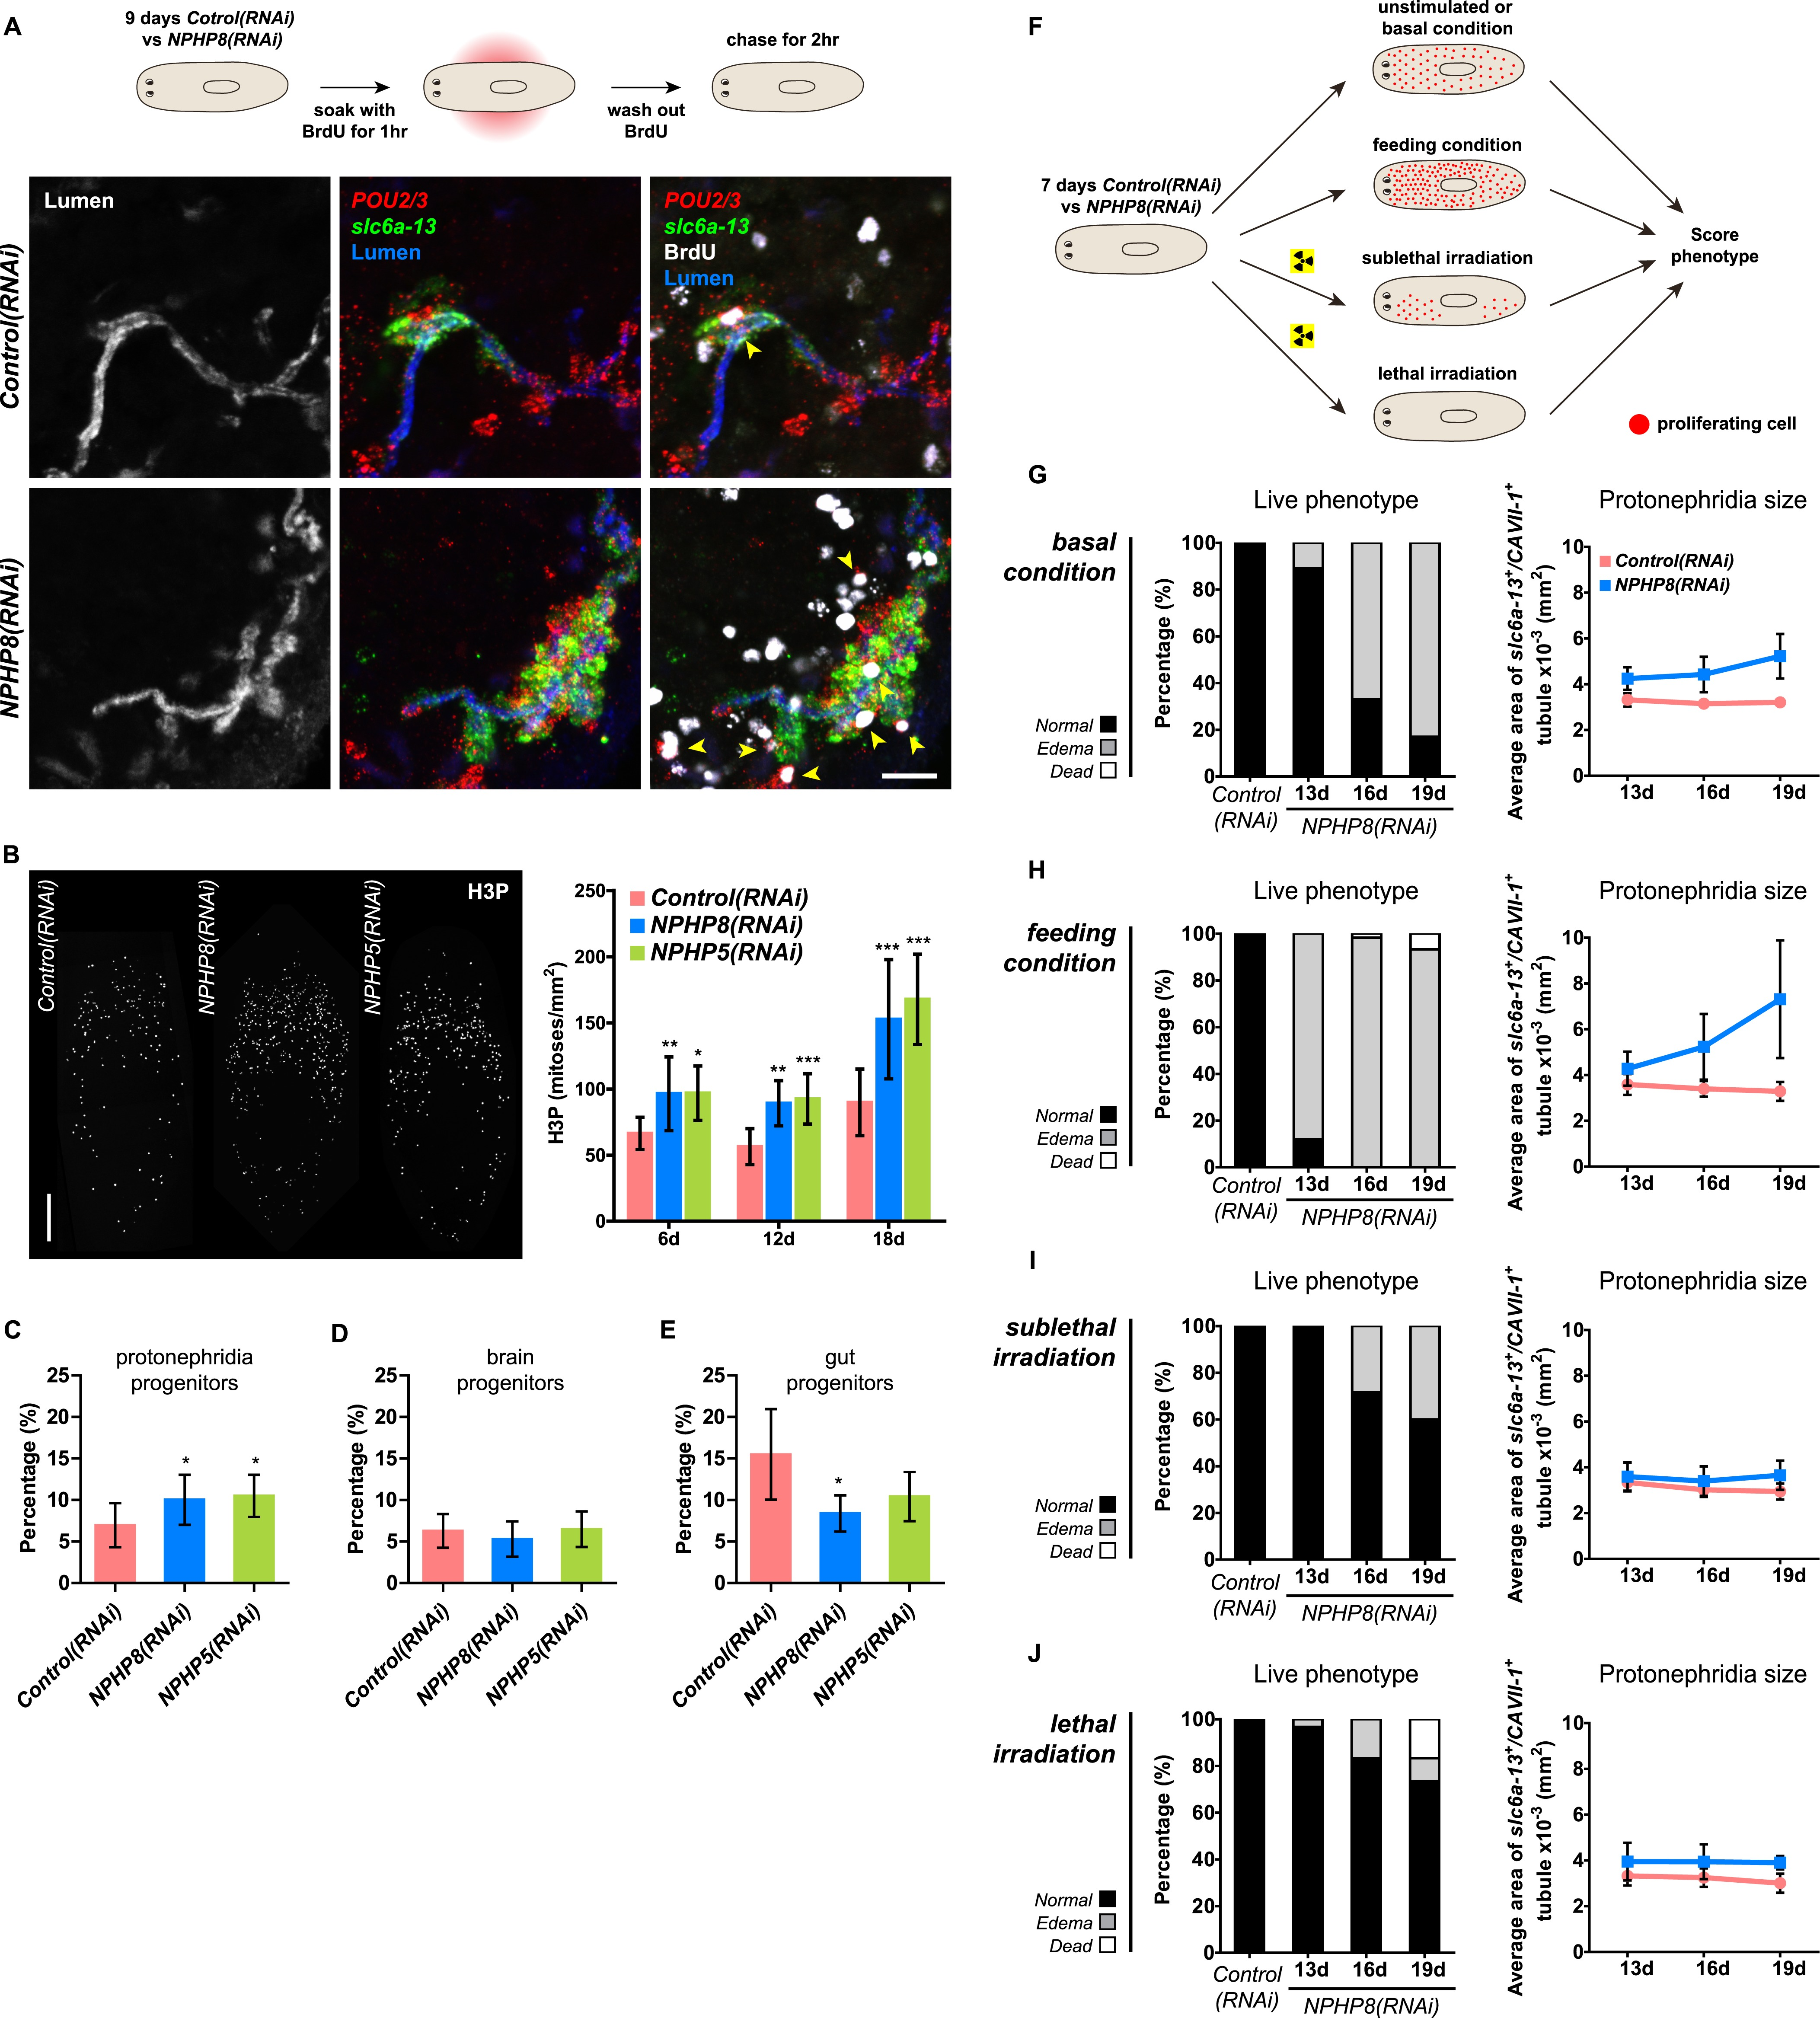 Stem cells and fluid flow drive cyst formation in an invertebrate ...